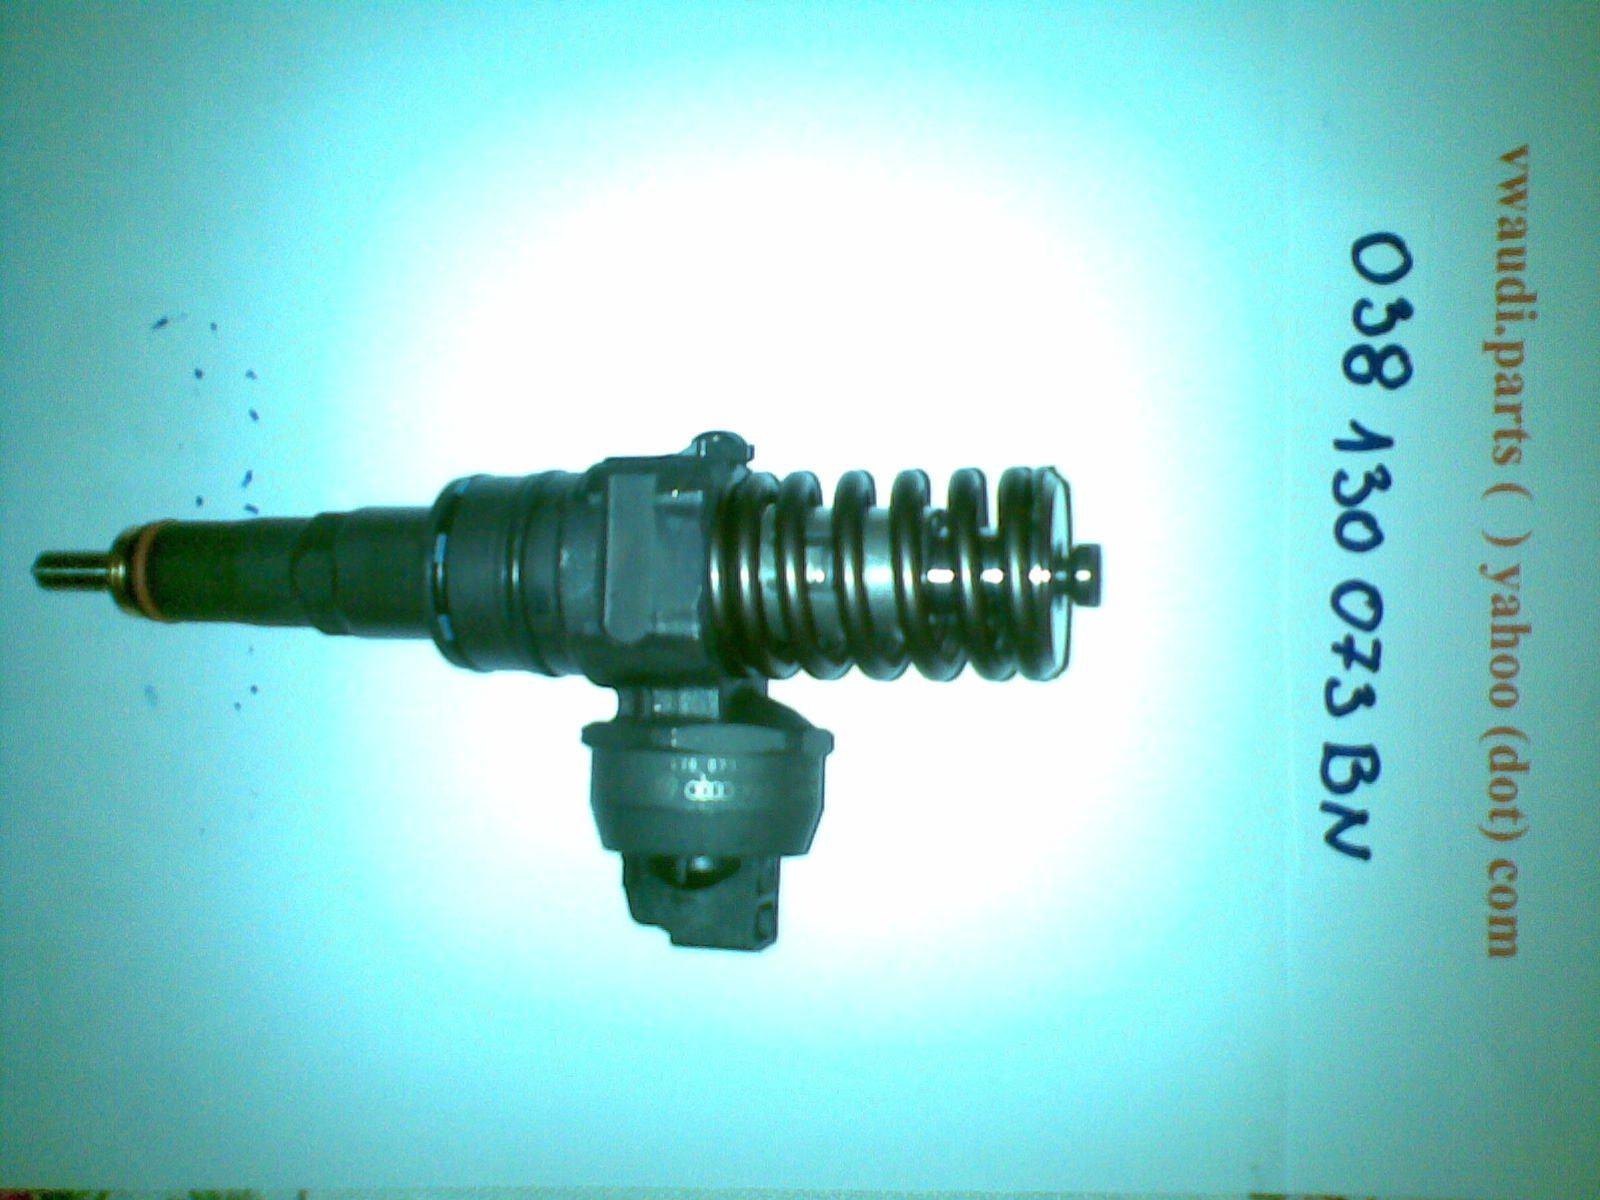 Glow Plug Injector, Glow Plug Injector Suppliers and Manufacturers ...